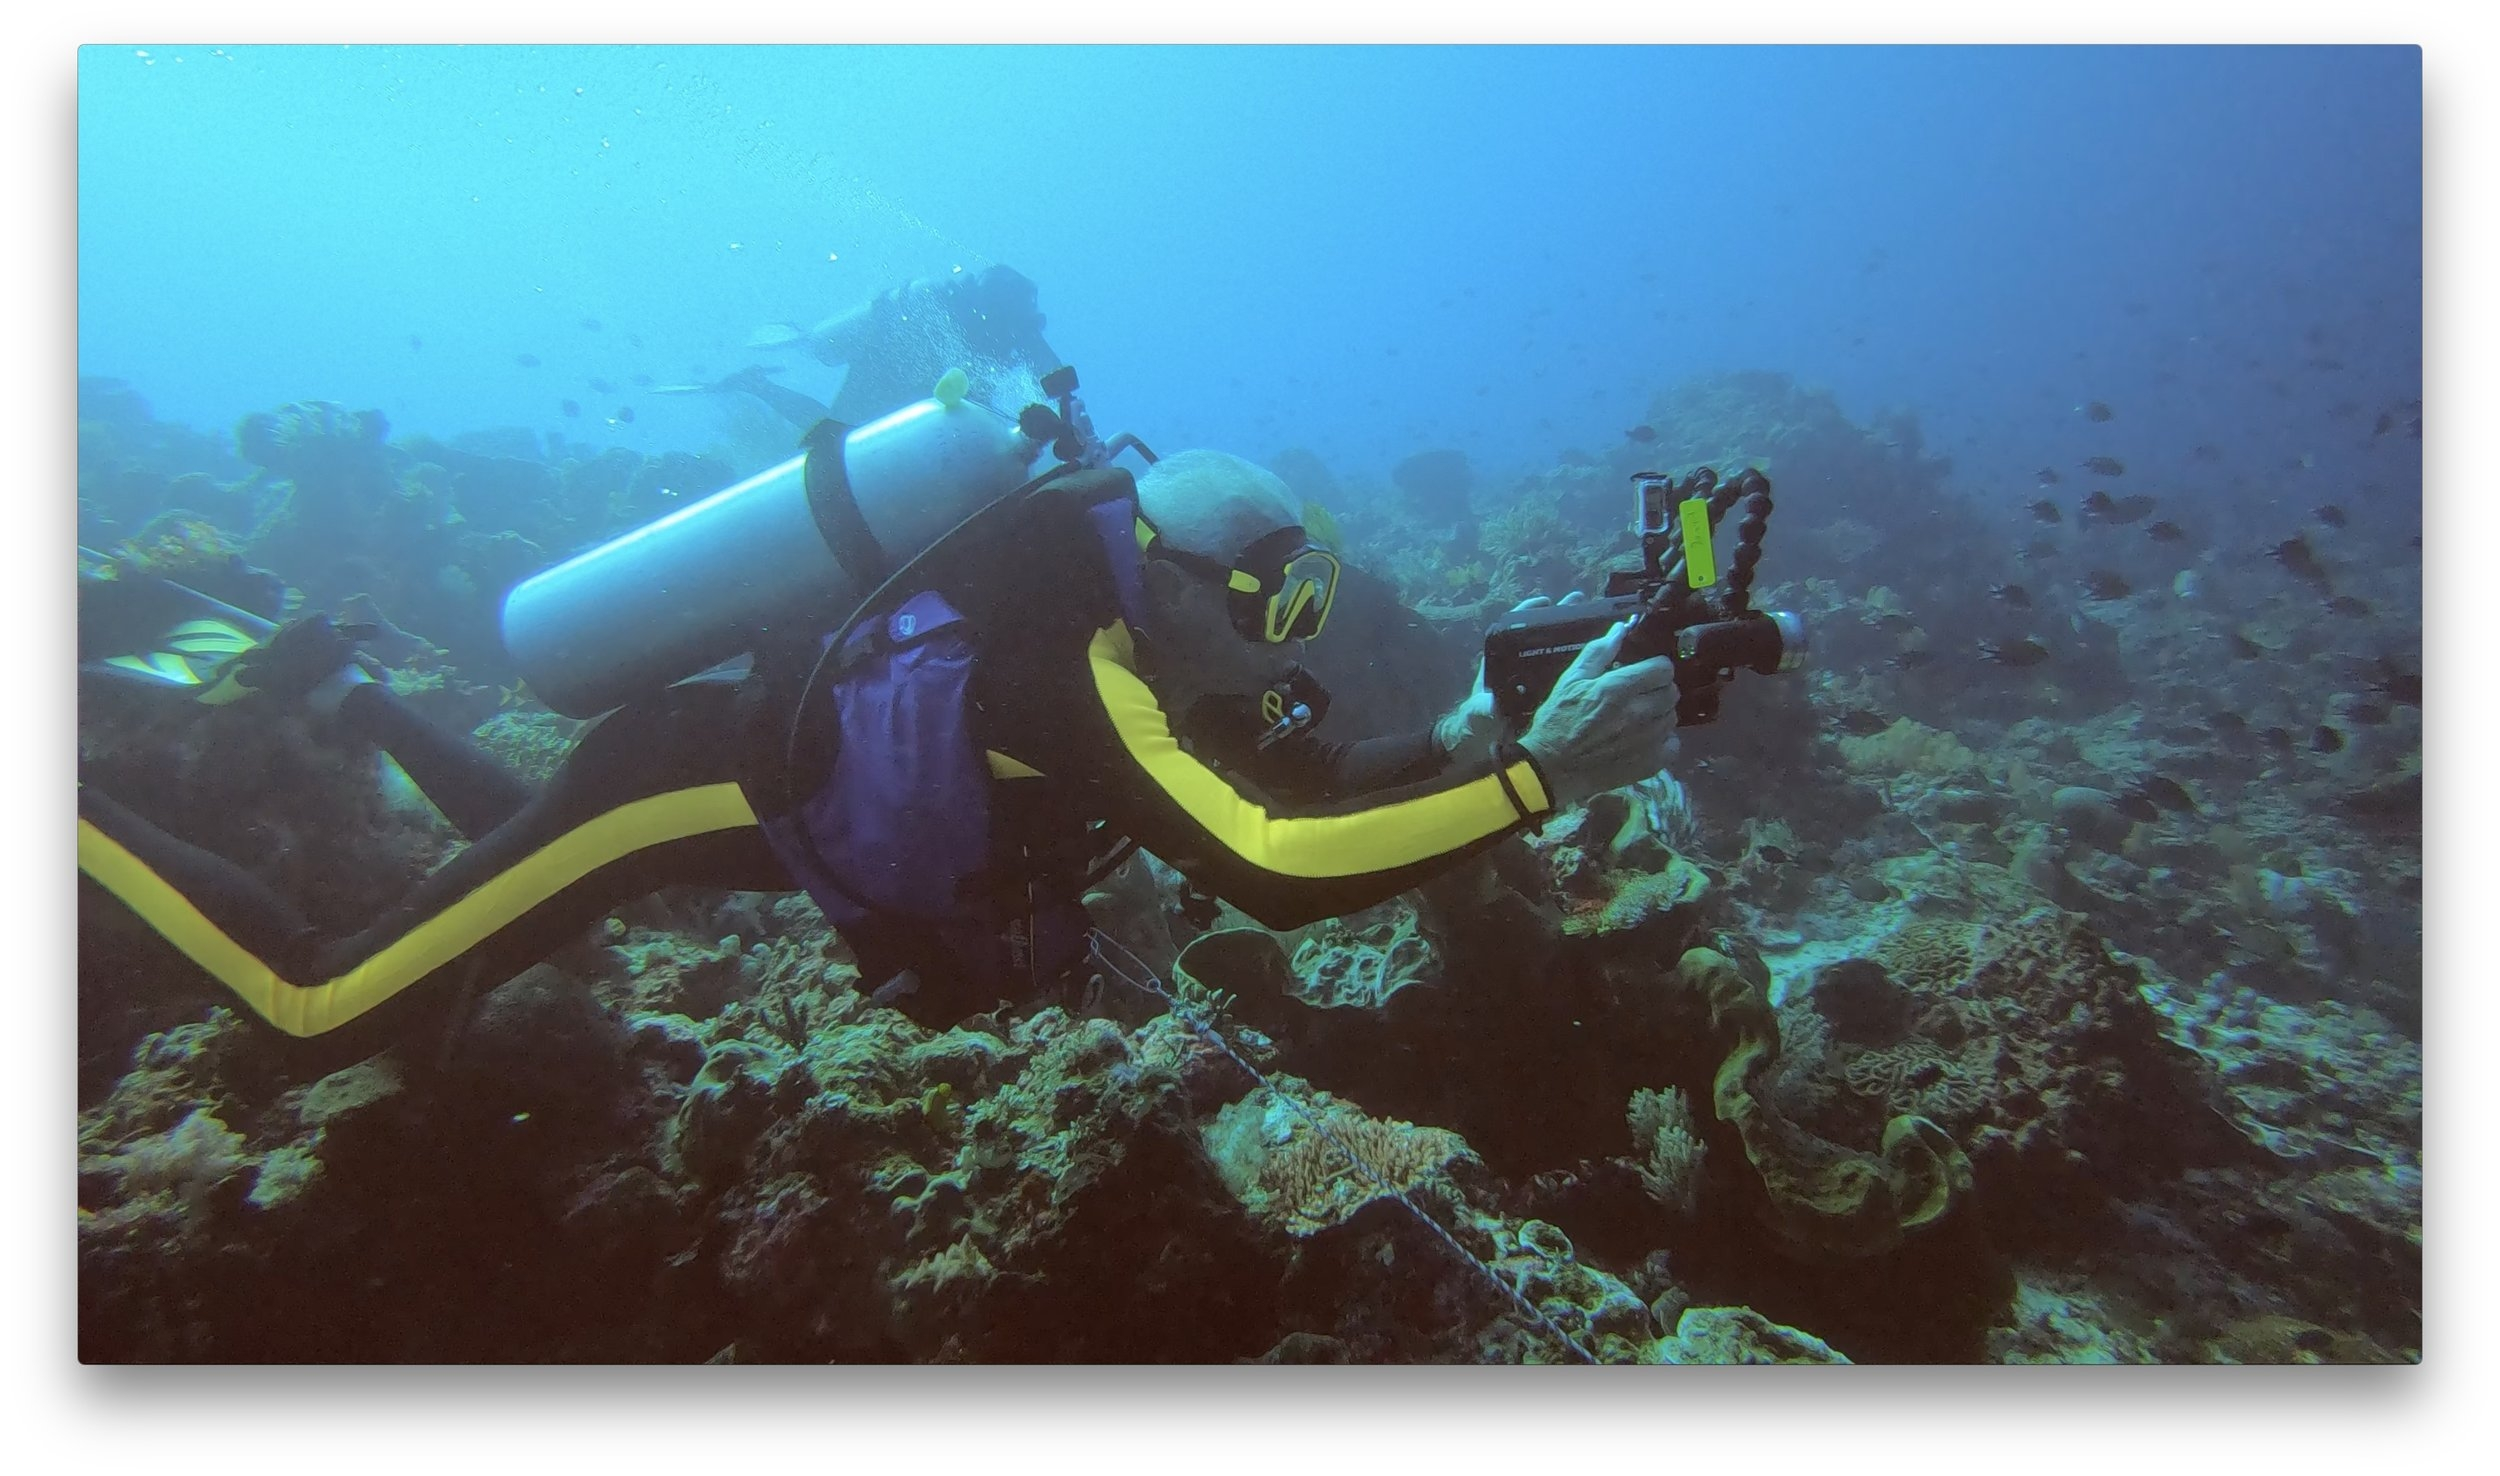 CORAL REEF RESTORATION OPPORTUNITIES - Make Your Difference